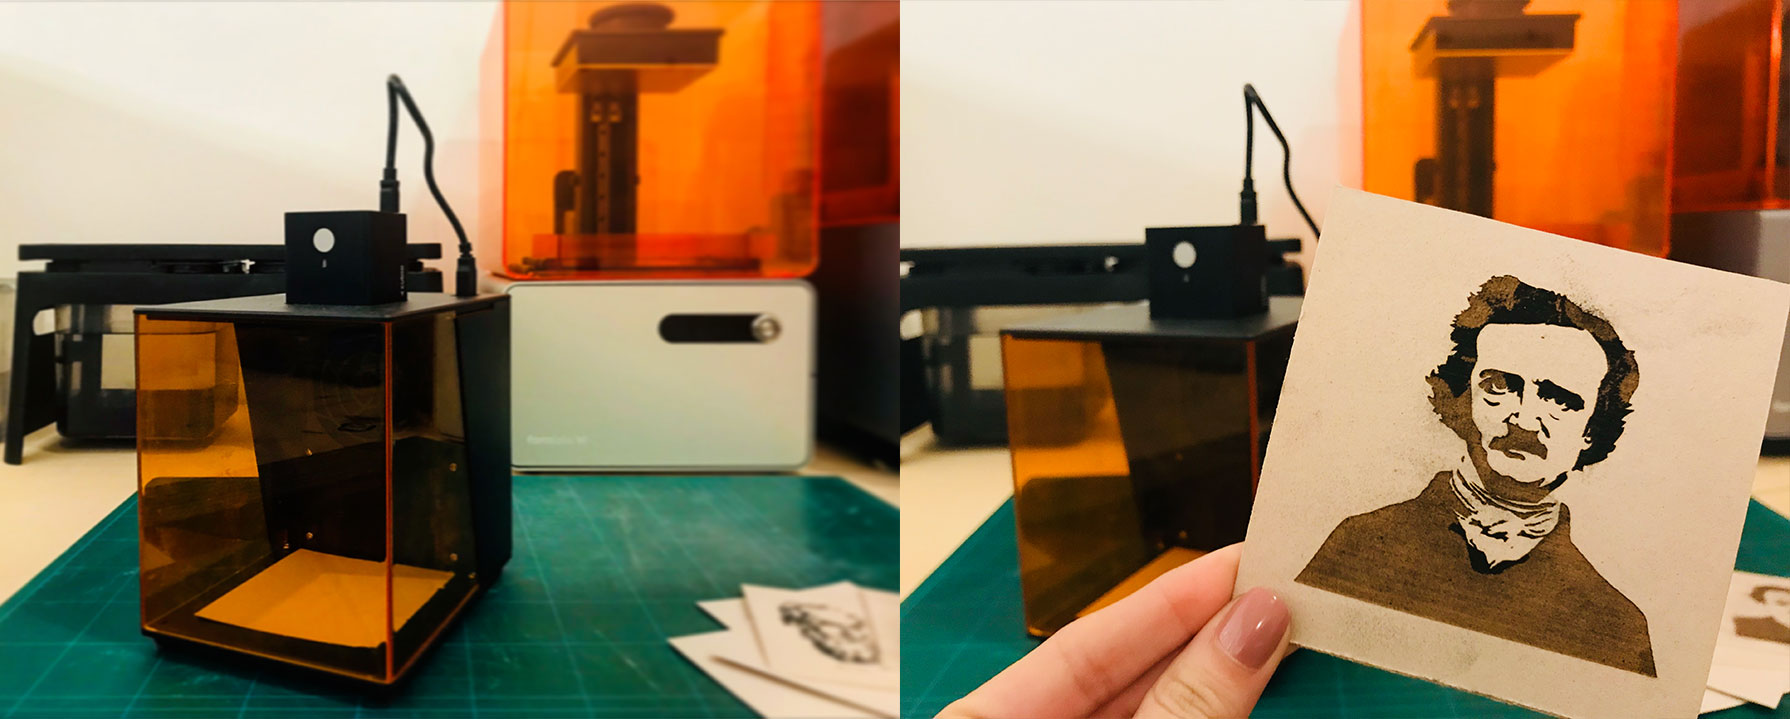 CUBIIO Engraver review by Atellani